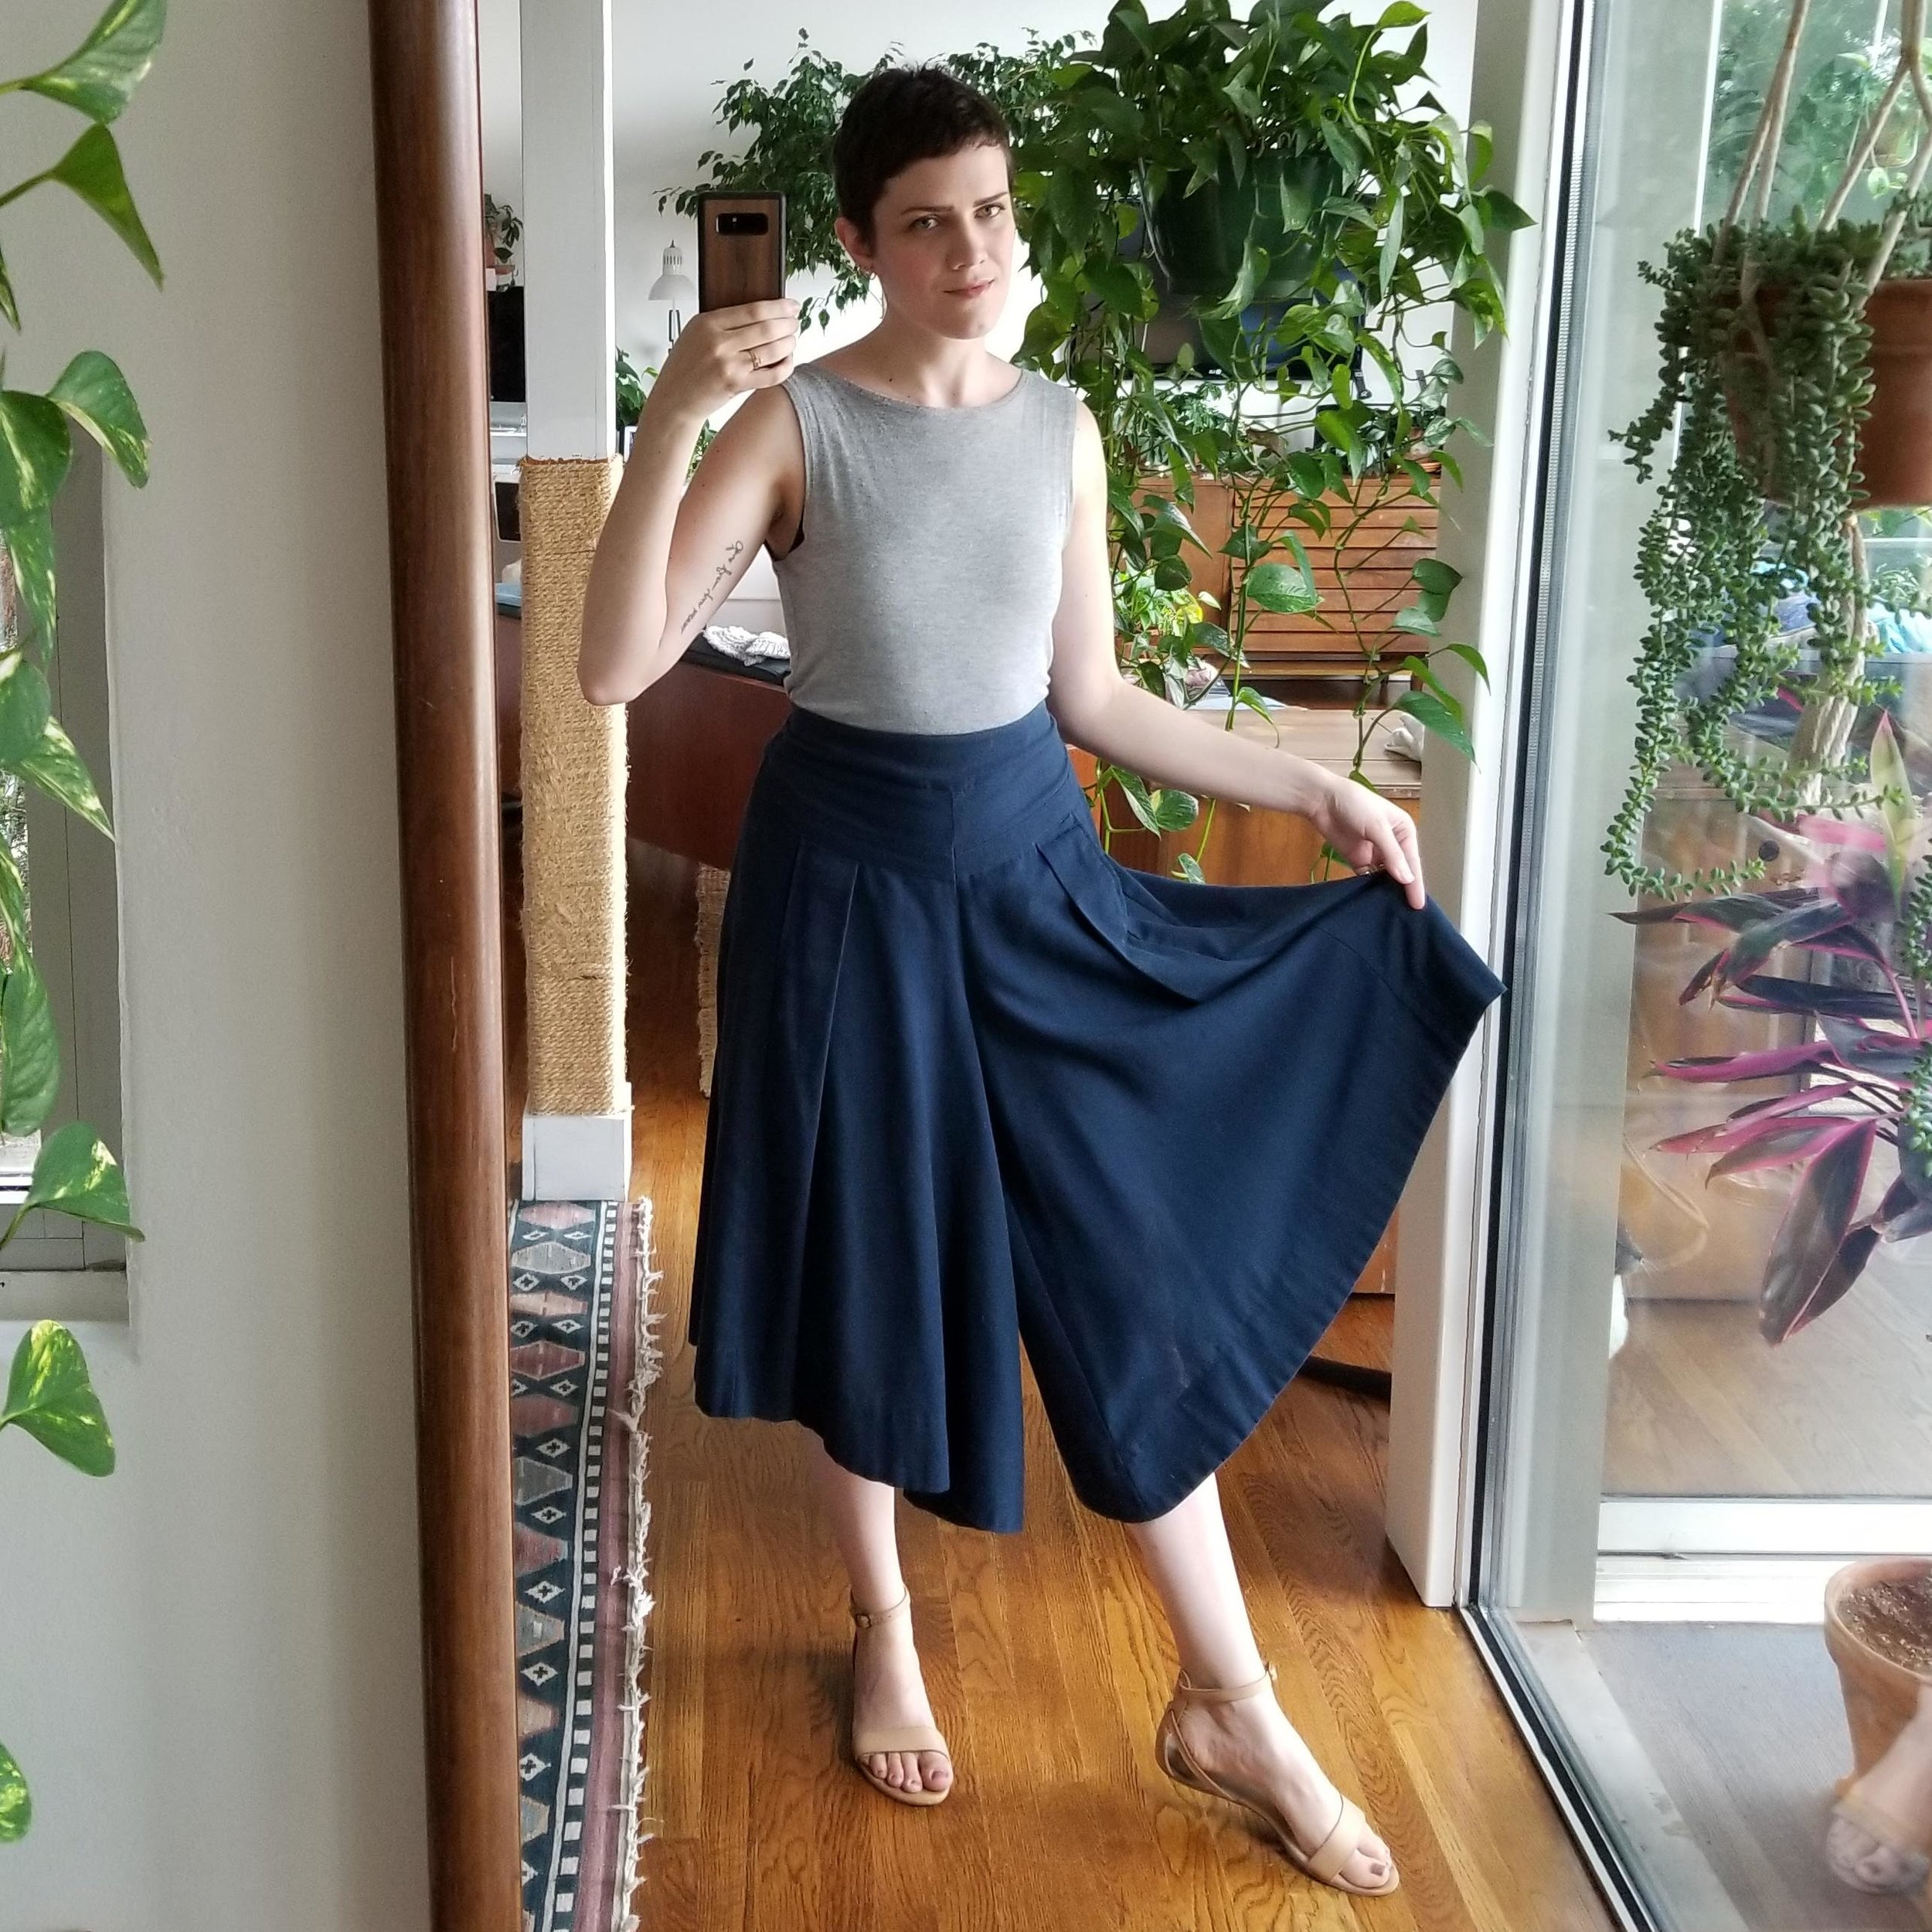 Saturday - June 23, 2018Haircut pup! First day with a new 'do. I picked up these navy blue pleated culottes when I visited my aunt in Vancouver almost five years ago now. They still feel so current in my wardrobe! I have to do a major shimmy to get them over my bubble butt because they are flat front/elastic back, but once on they fit great. I've thought about adding a zip fly to them or something because I always hate to shimmy, but I worry I'd ruin them somehow in the process.